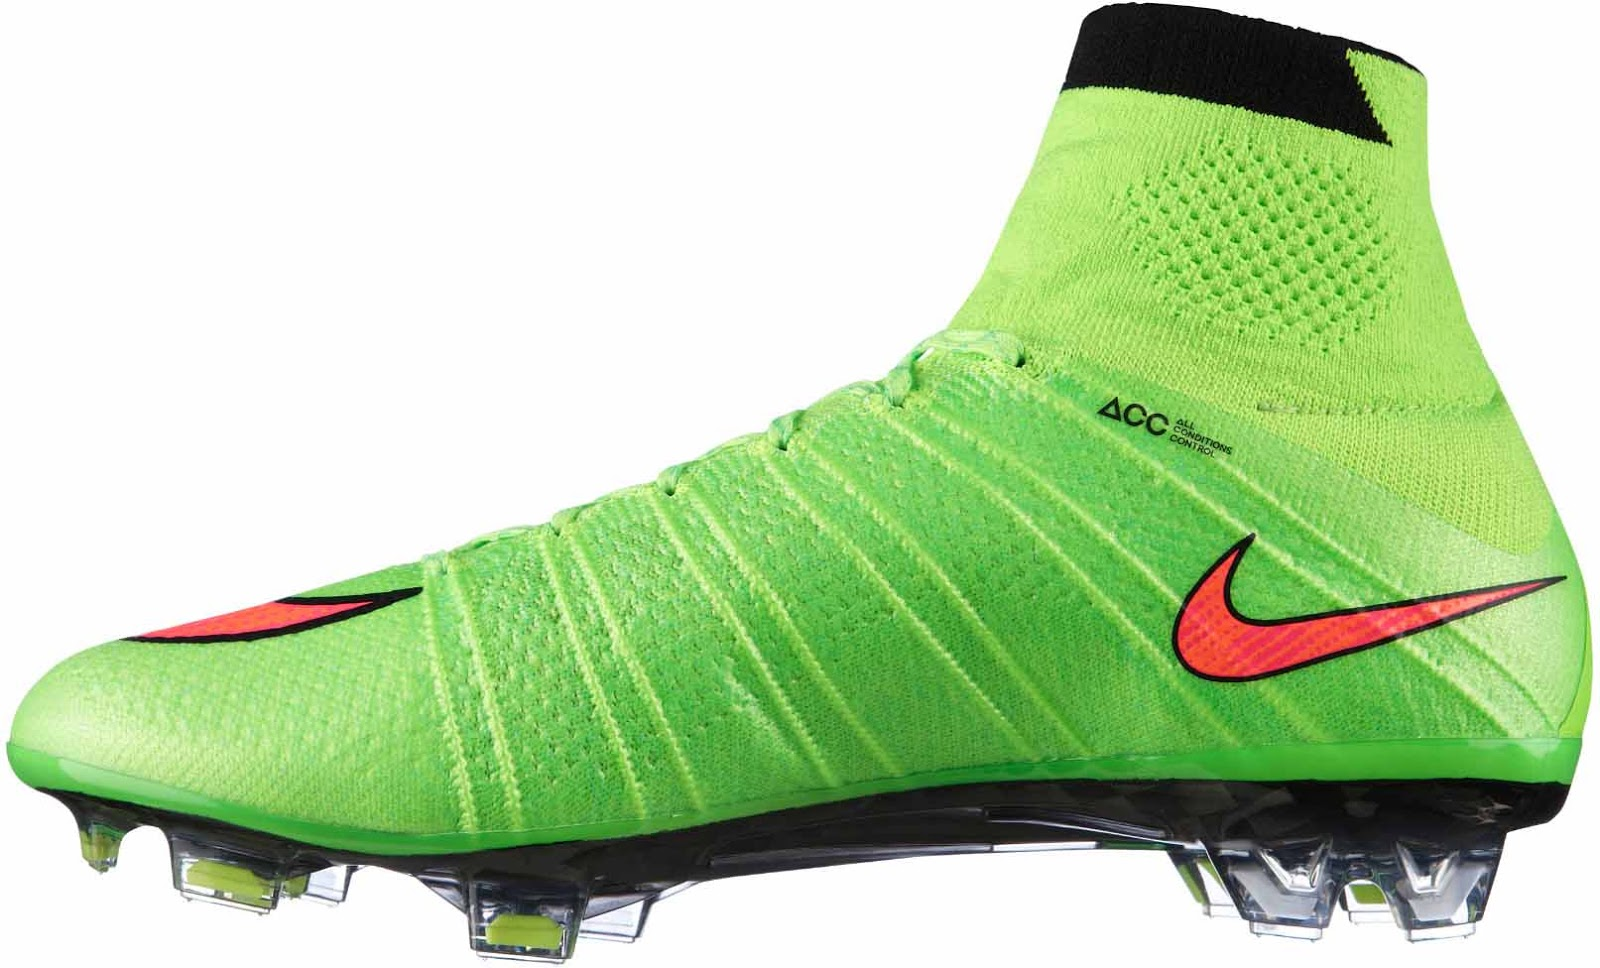 Green Nike Mercurial Superfly IV Cristiano